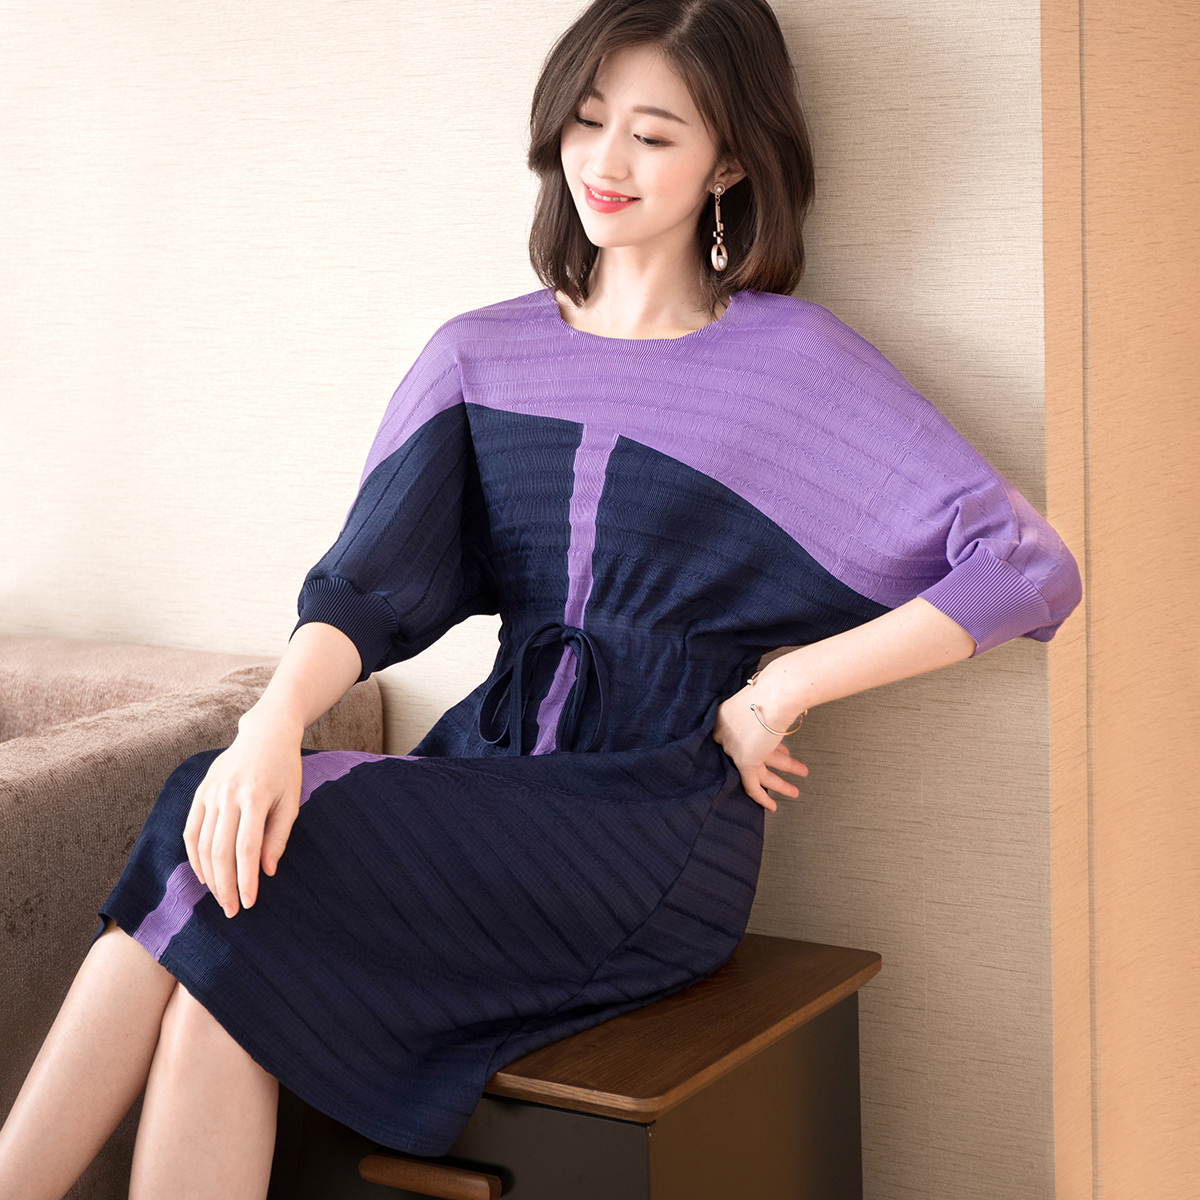 Women's Clothing French Minority Dresses Summer 2019 New Fashion Sleeve Coloured Fashion Lace Body-shaping Folded A-shaped Dress Miyake Pleats Can Be Repeatedly Remolded.